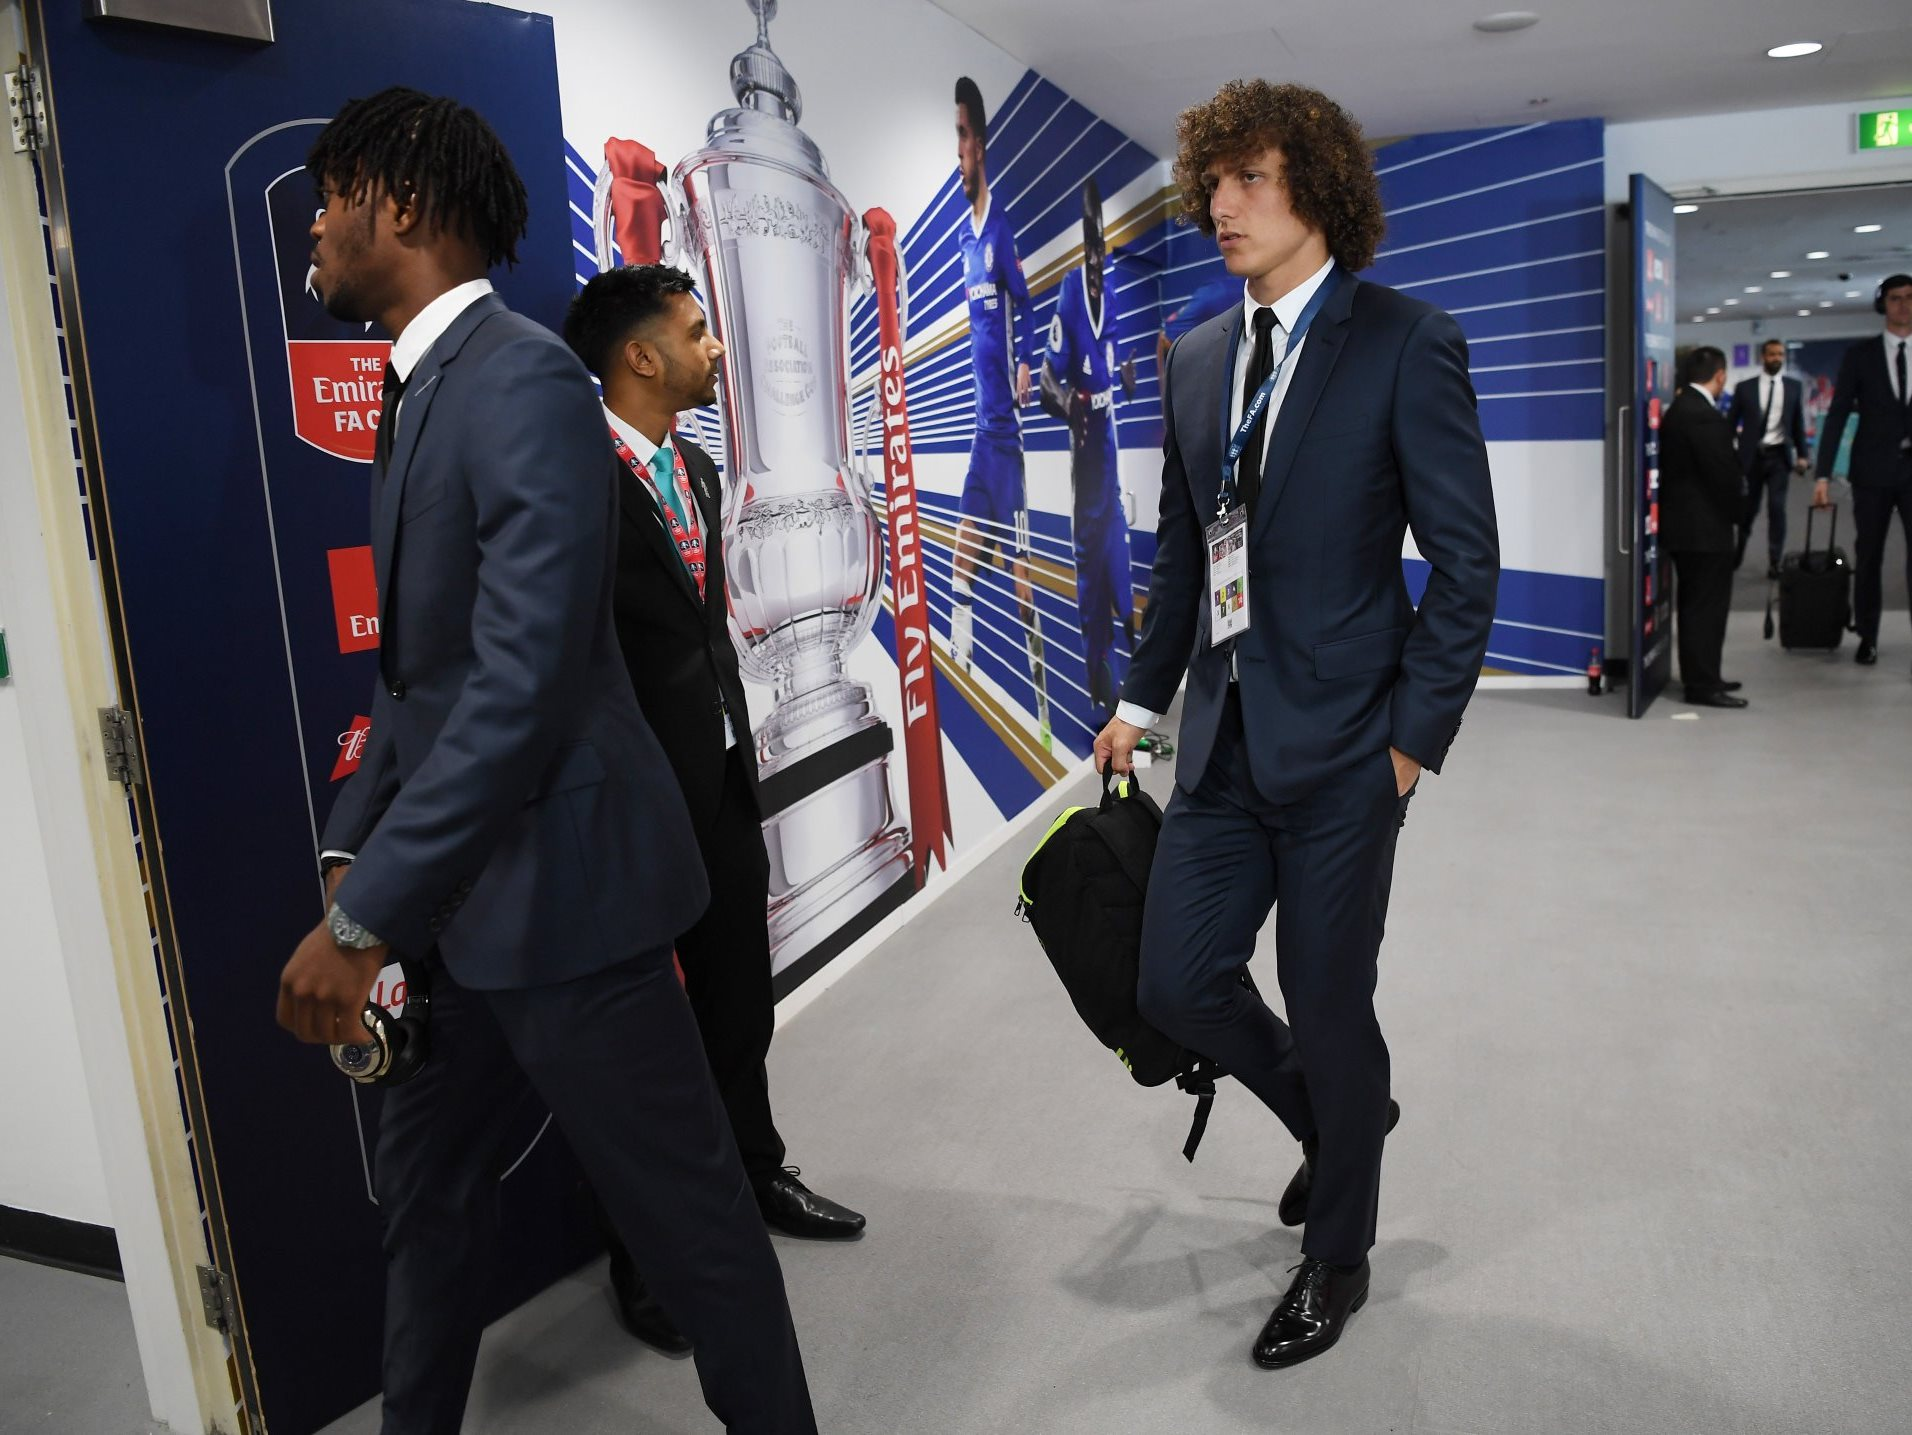 David Luiz arrives at Wembley in DIOR suit